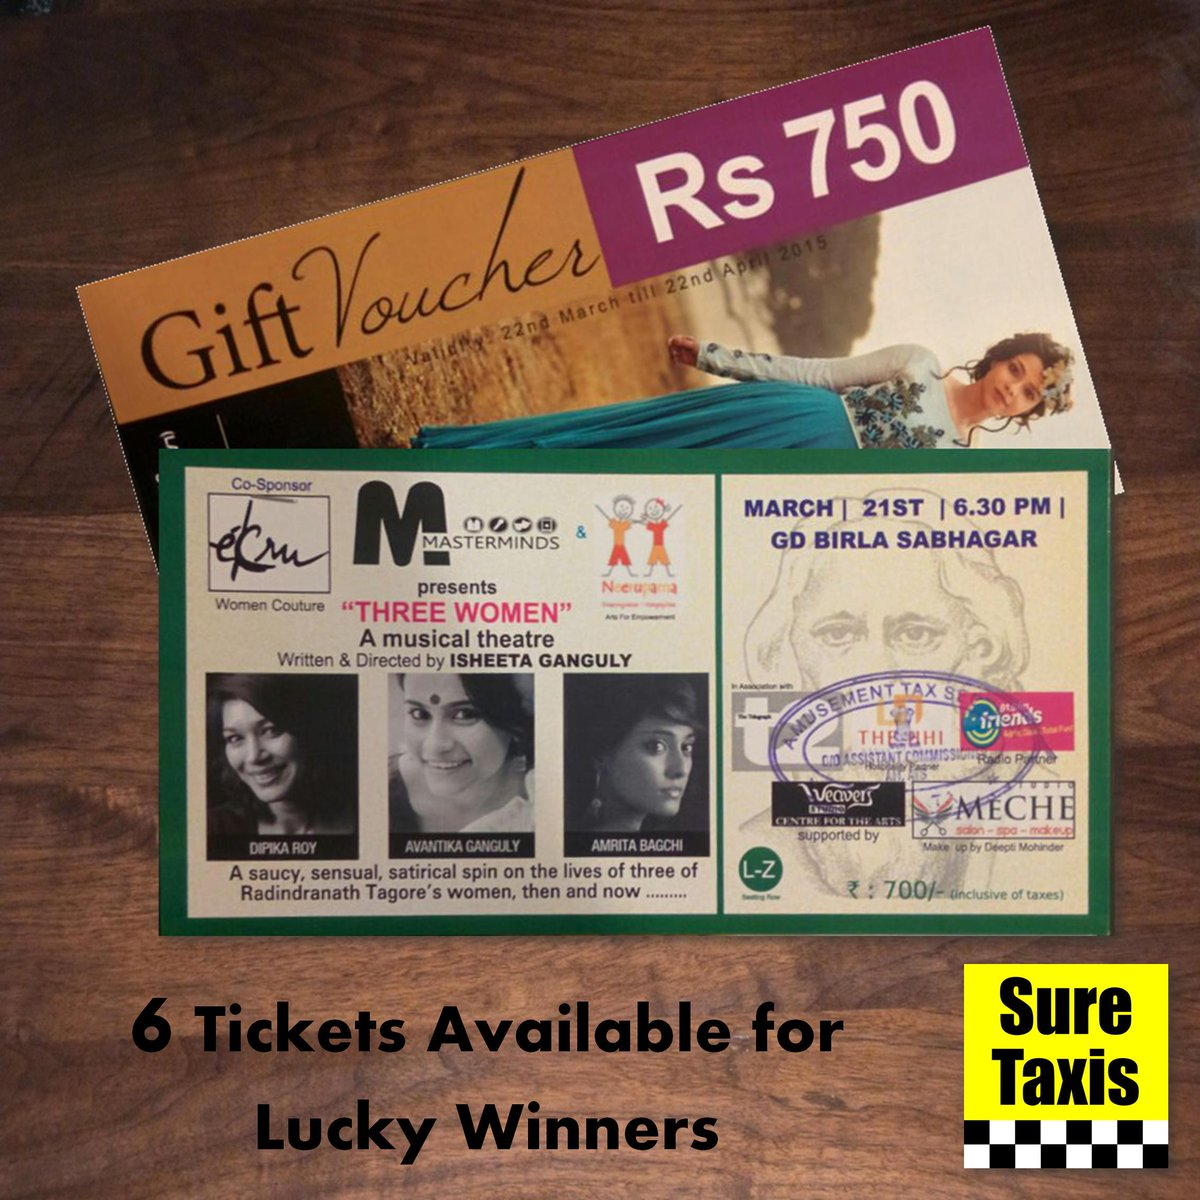 Win #free tickets to the play @3threewomen and #vouchers worth ₹750! #Competition ends at 6pm! http://t.co/mDe7Qxsvop http://t.co/Y803ck0LY4